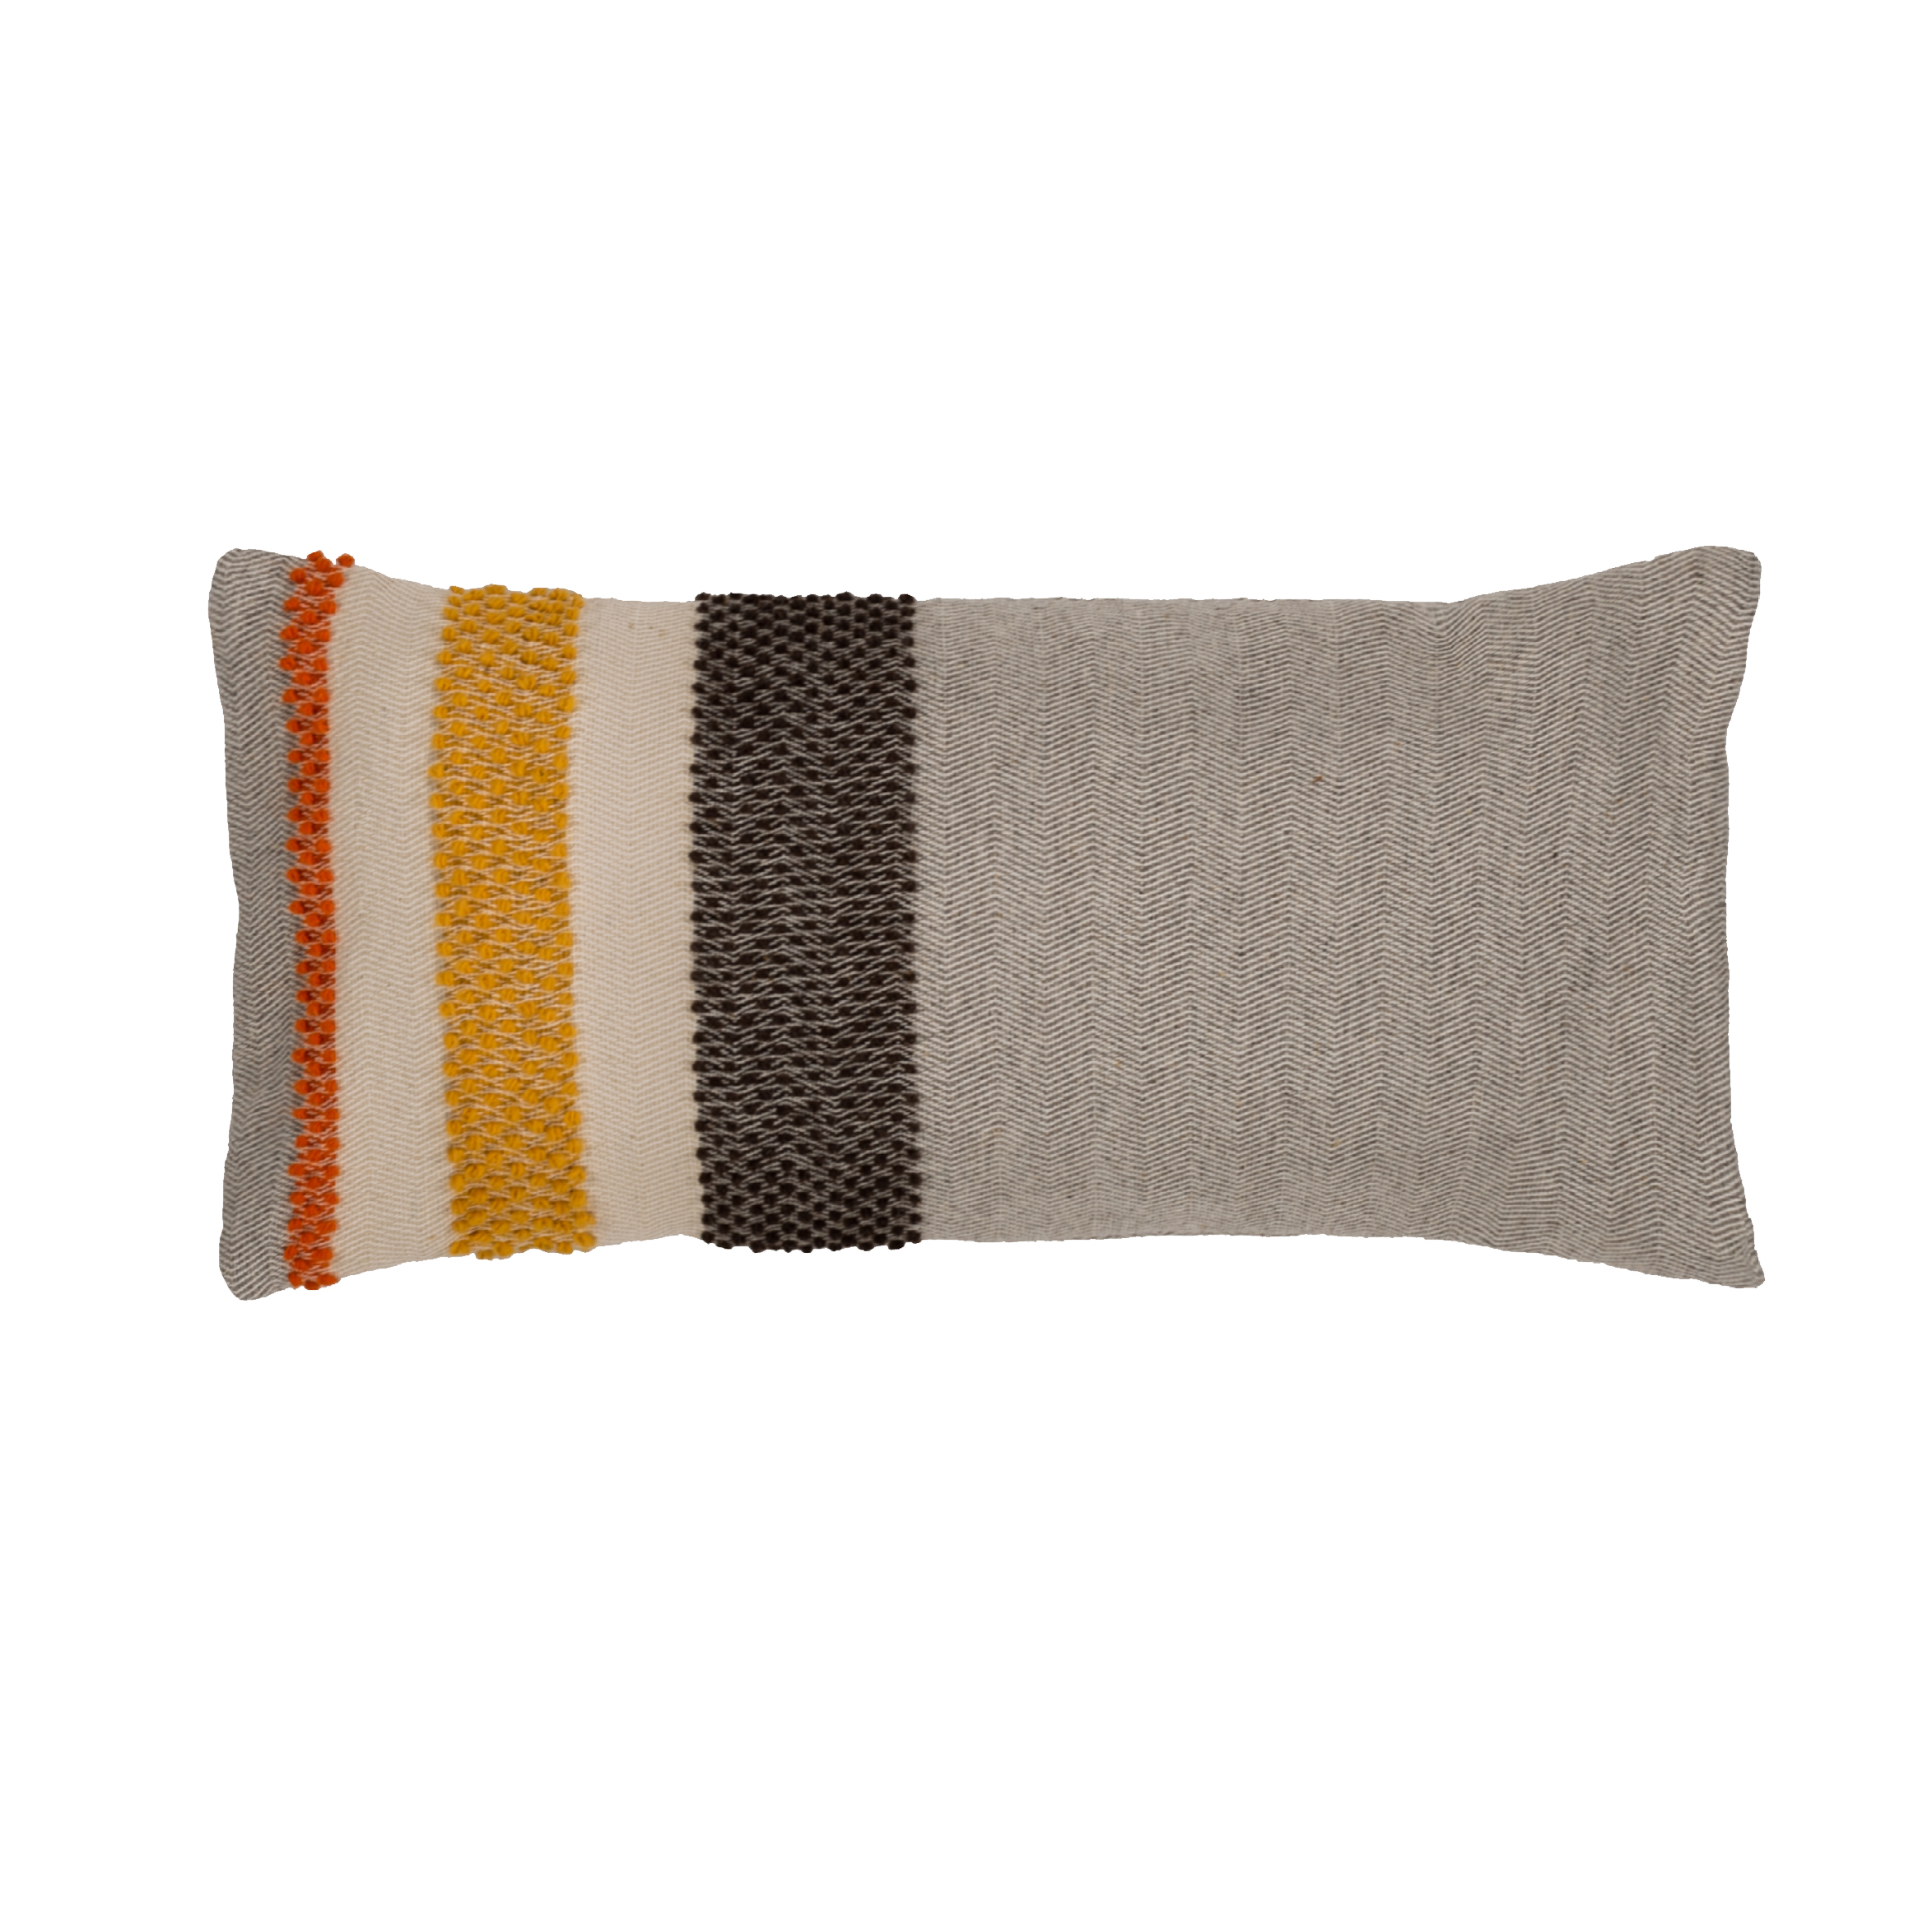 Modulo Cushion - Made with Pibiones and Aramu technique 90% wool, 10% cotton.  | Matter of Stuff